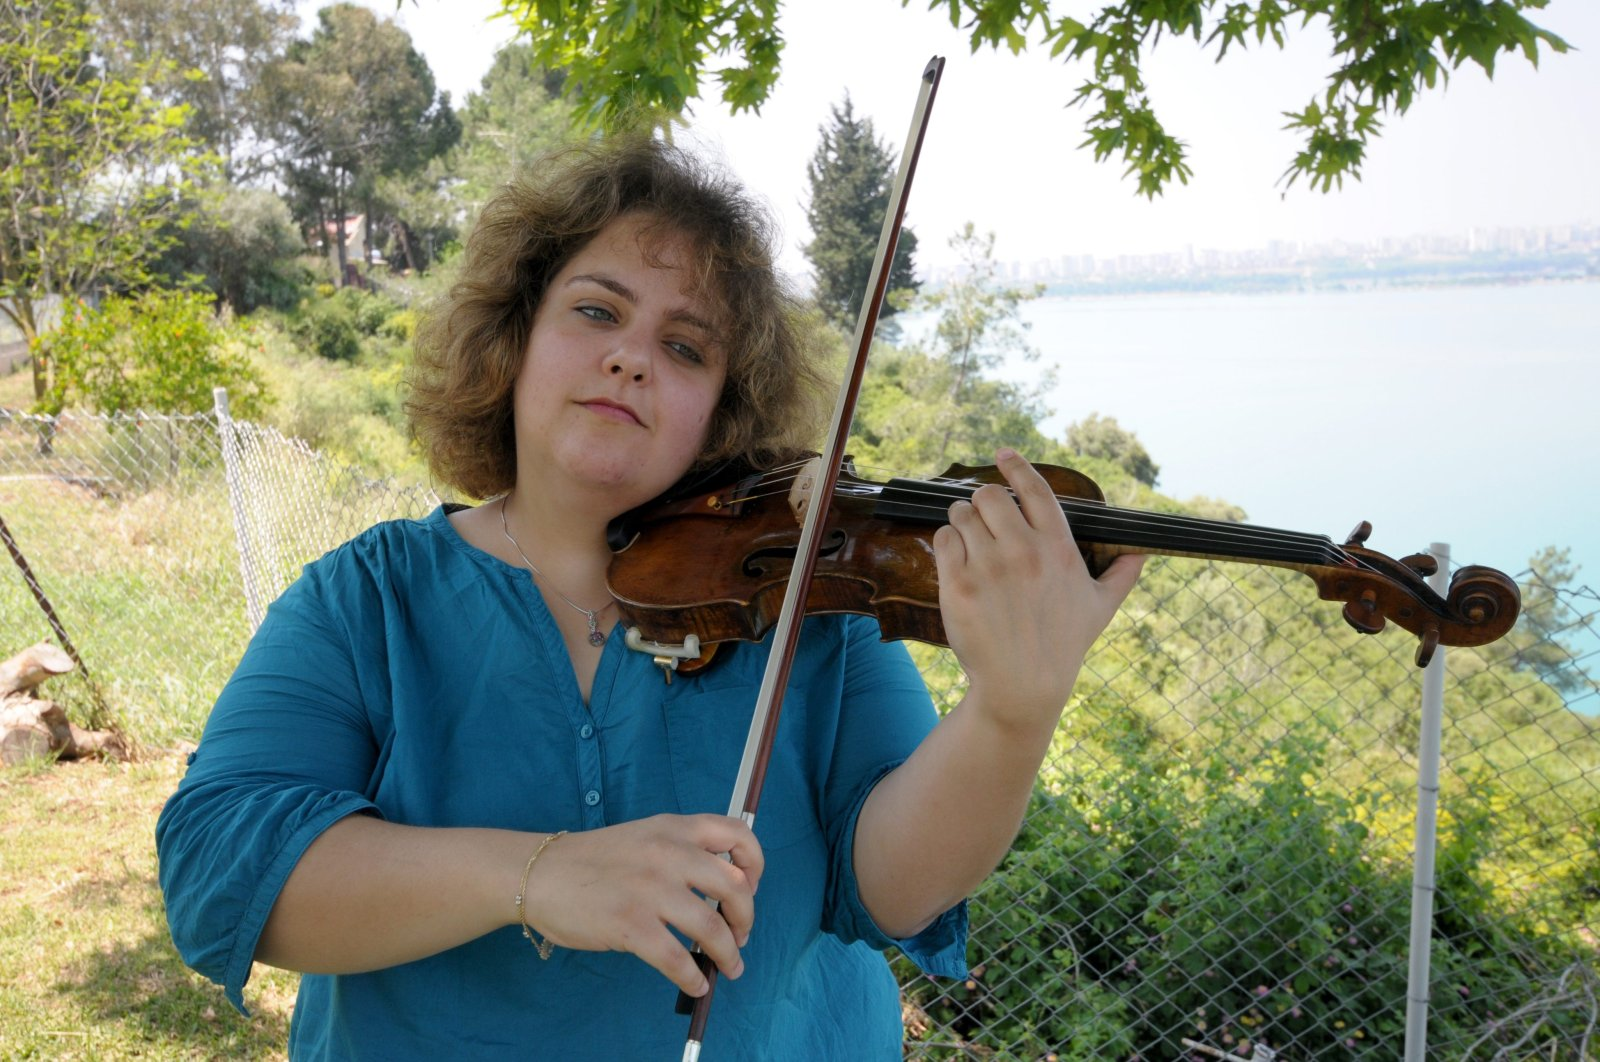 Hande Küden studied at the State Conservatory of Çukurova University before her training in Germany. (AA Photo)